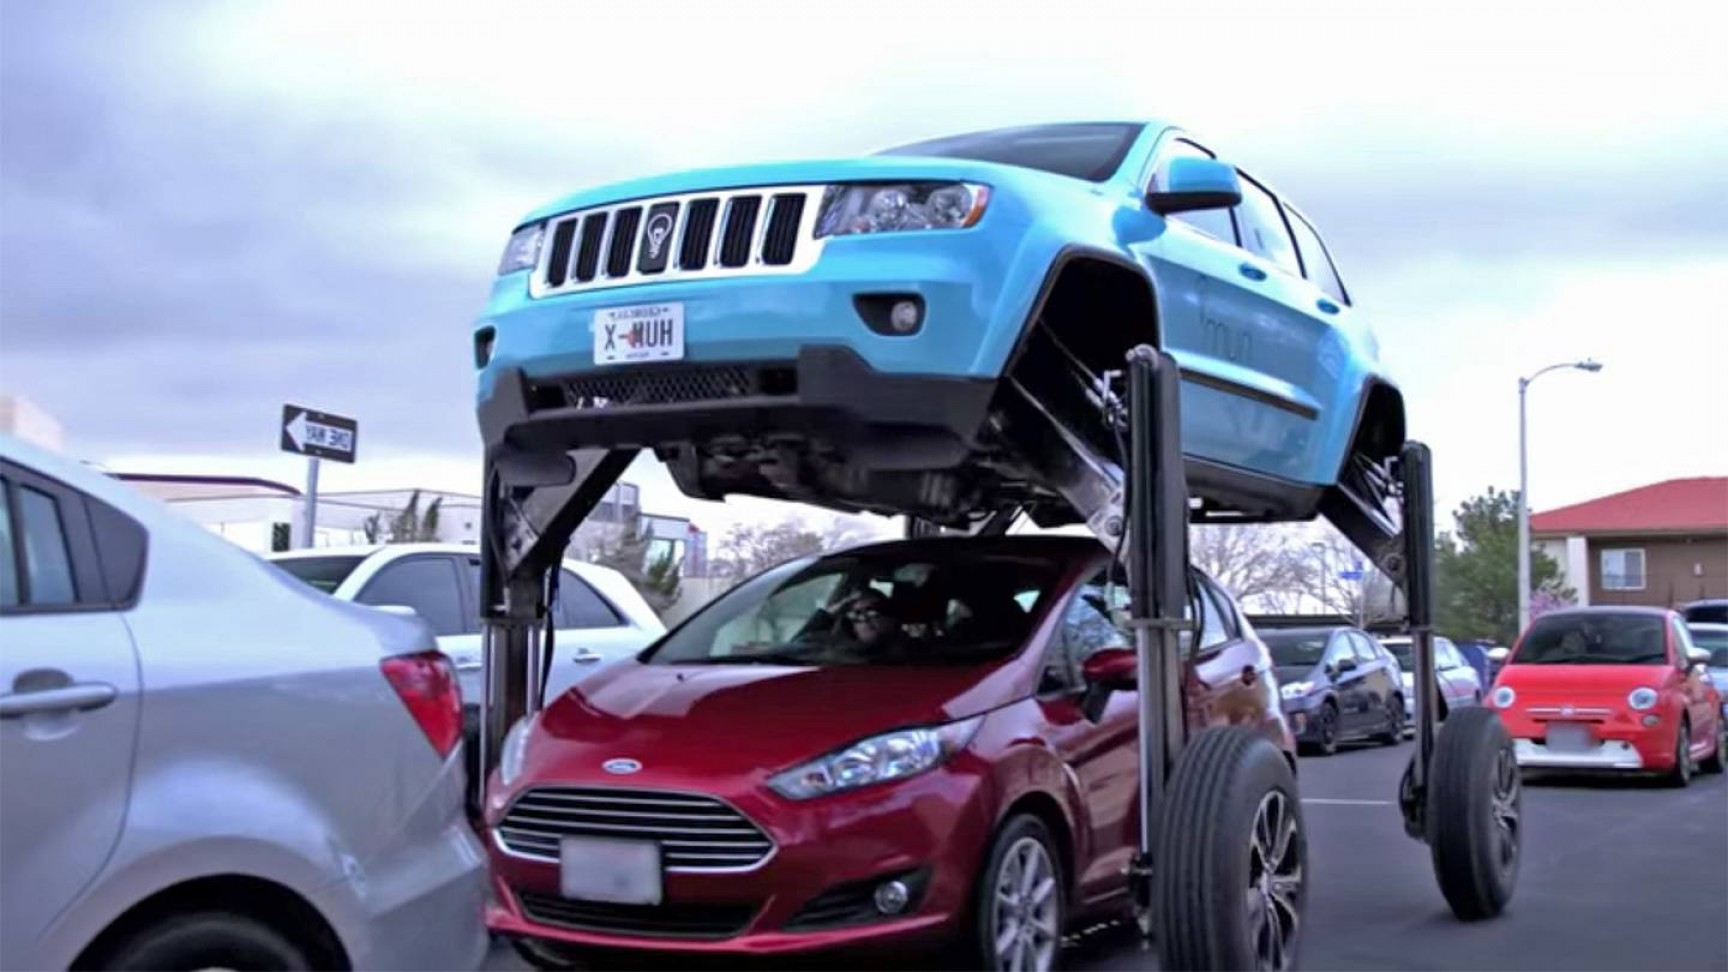 Jeep Vector Mean: This Jeep Grand Cherokee Rises Over Traffic To Promote Verizons New Connected Car Tech